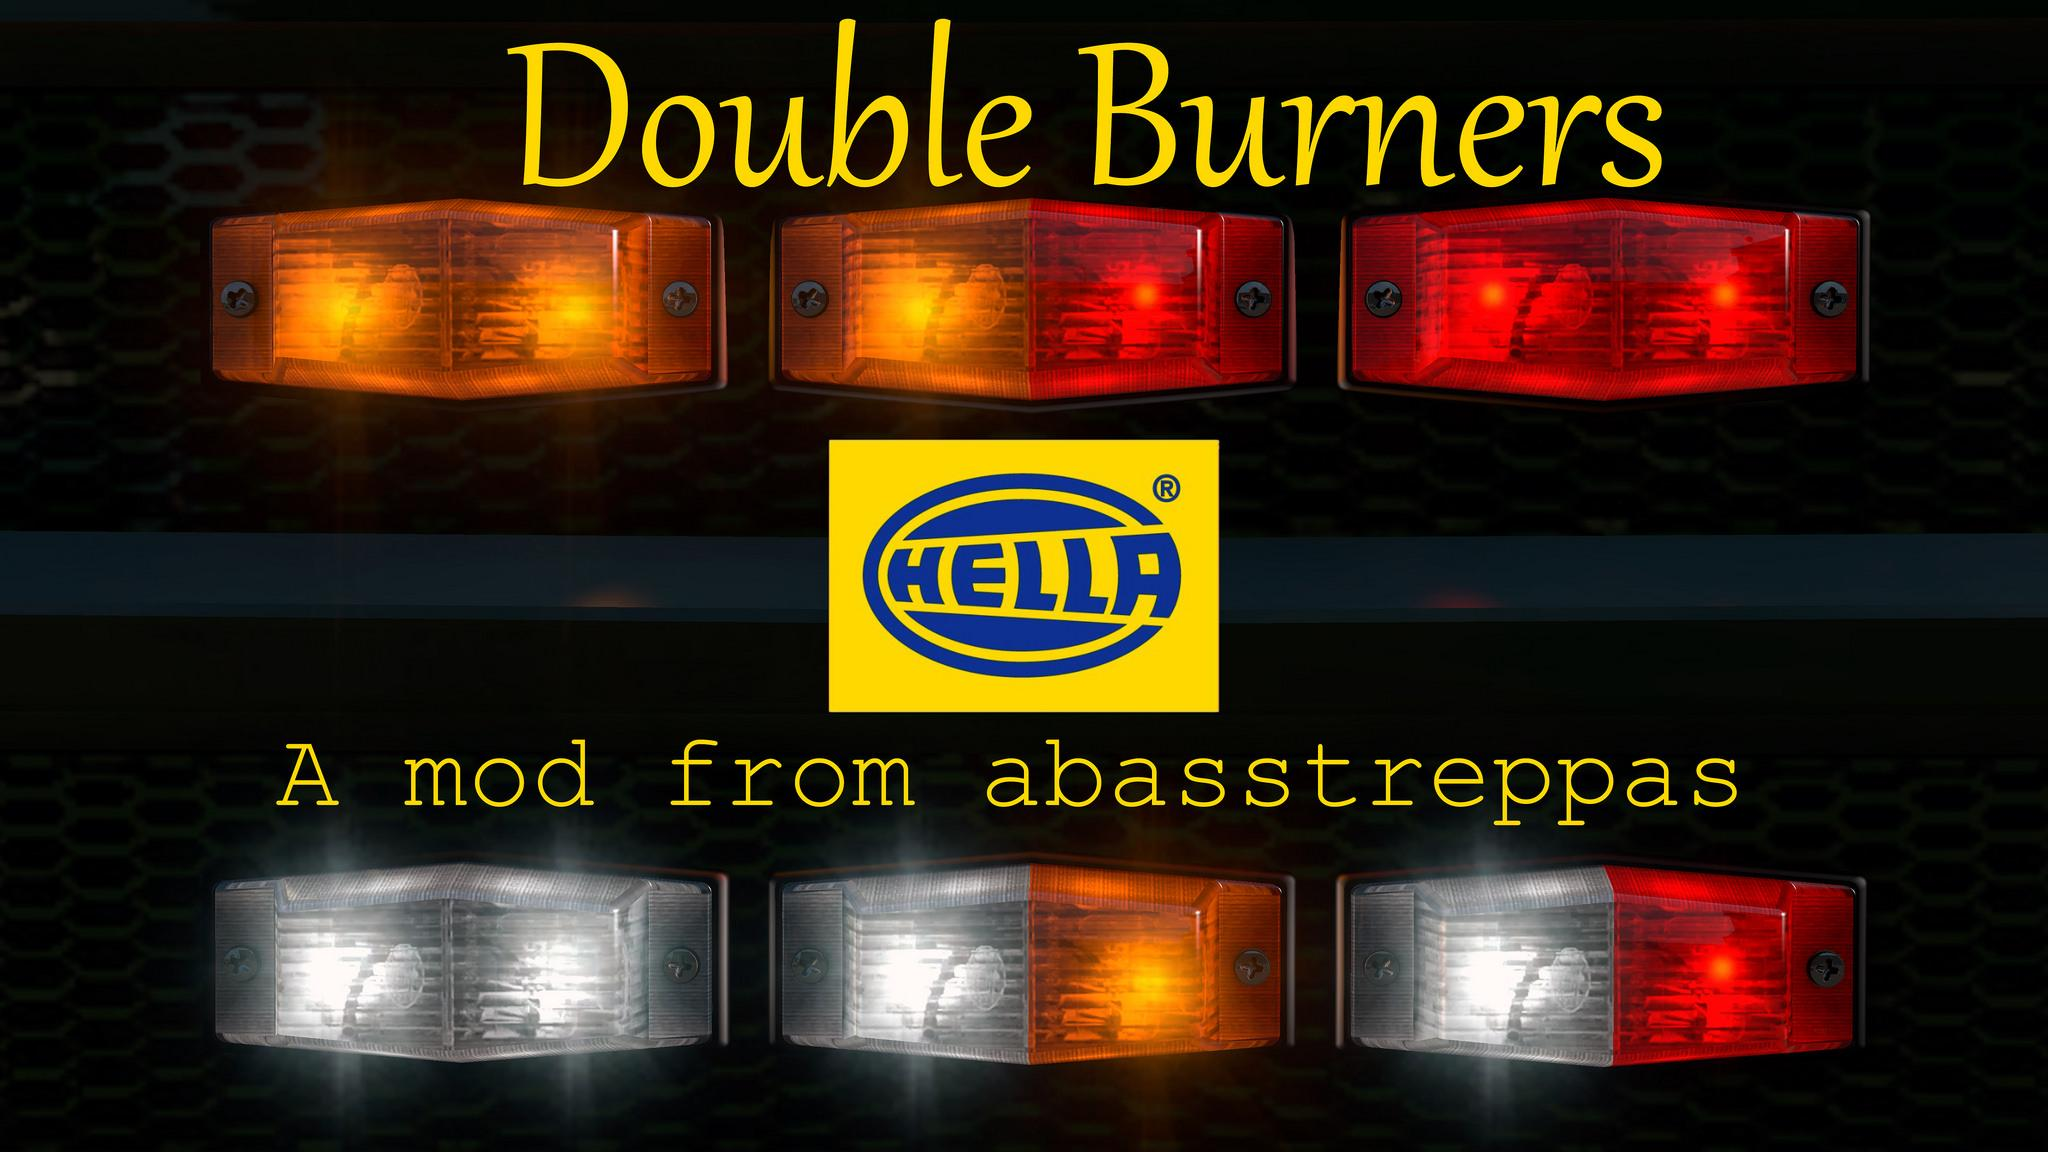 Hella Double Burners by abasstreppas [Updated Sep 20]